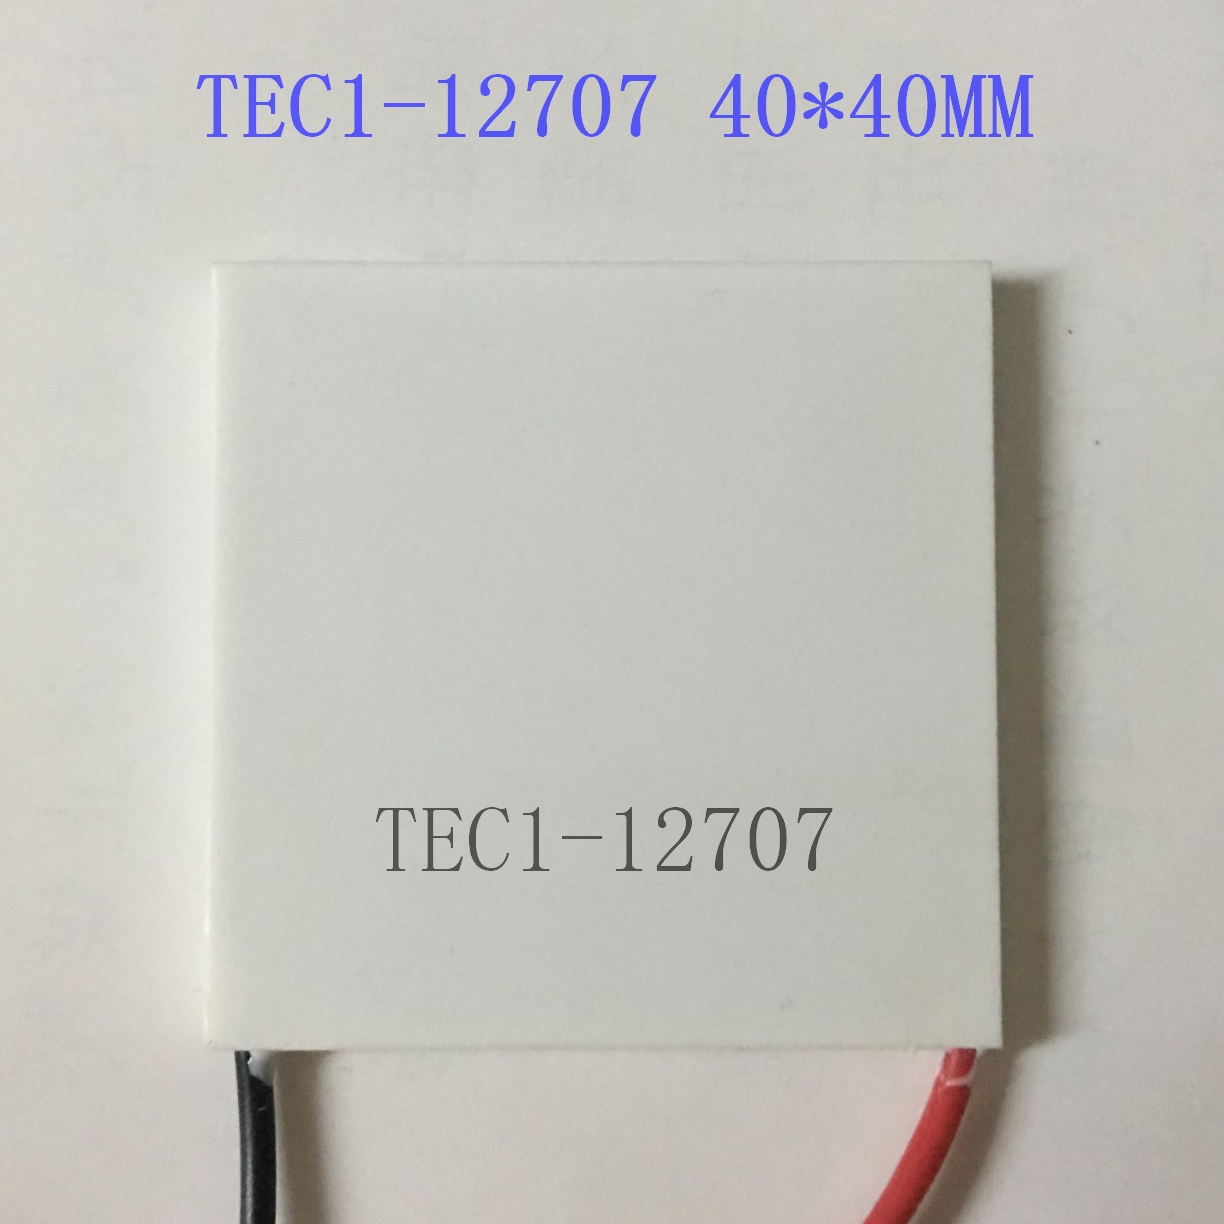 TEC1-12707 40*40MM 12V7A semiconductor cooling plate drinking water machine refrigerator refrigerator cooling plate tec1 06306 cooling plate mechanism of semiconductor refrigeration piece drinking water cooling equipment beauty instrument